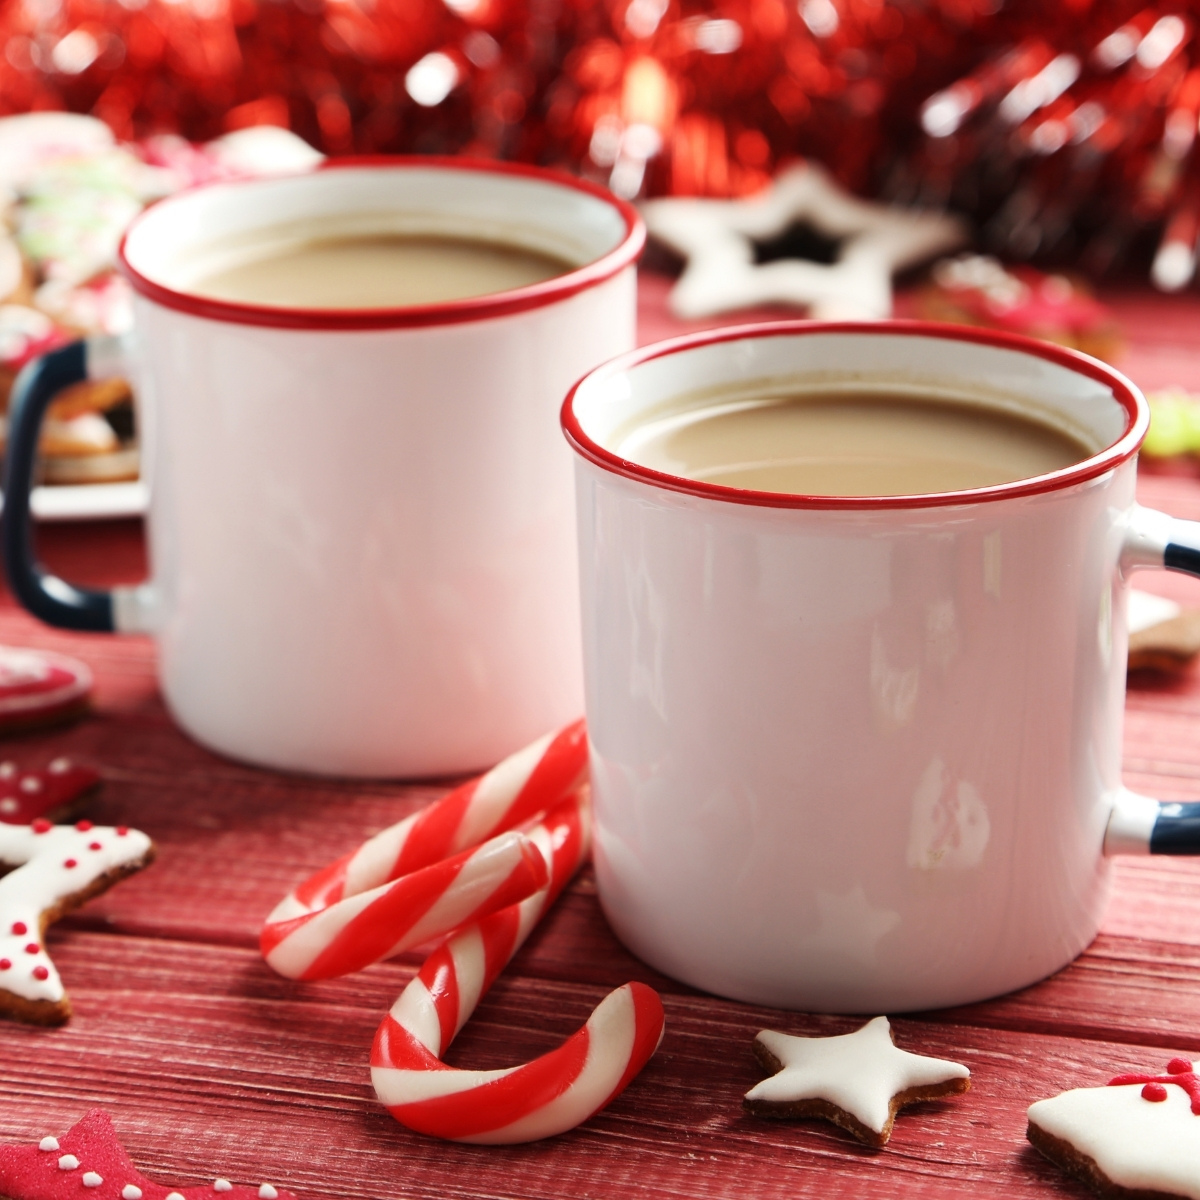 two mugs of hot cocoa in a festive red setting